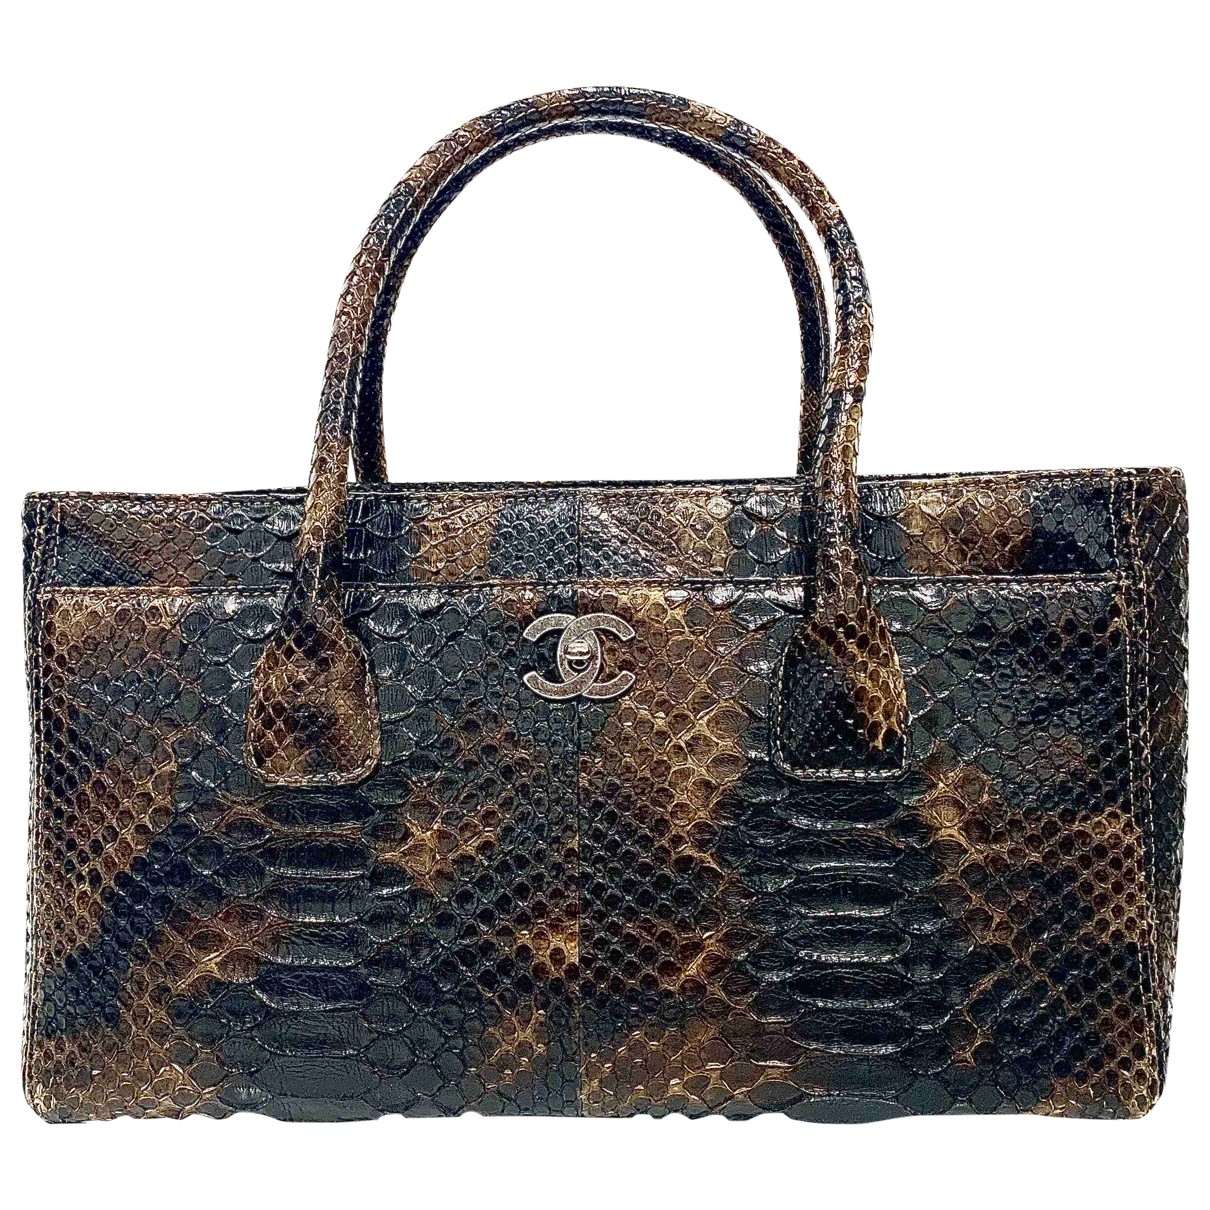 Chanel Executive Multicolour Python handbag for Women \N